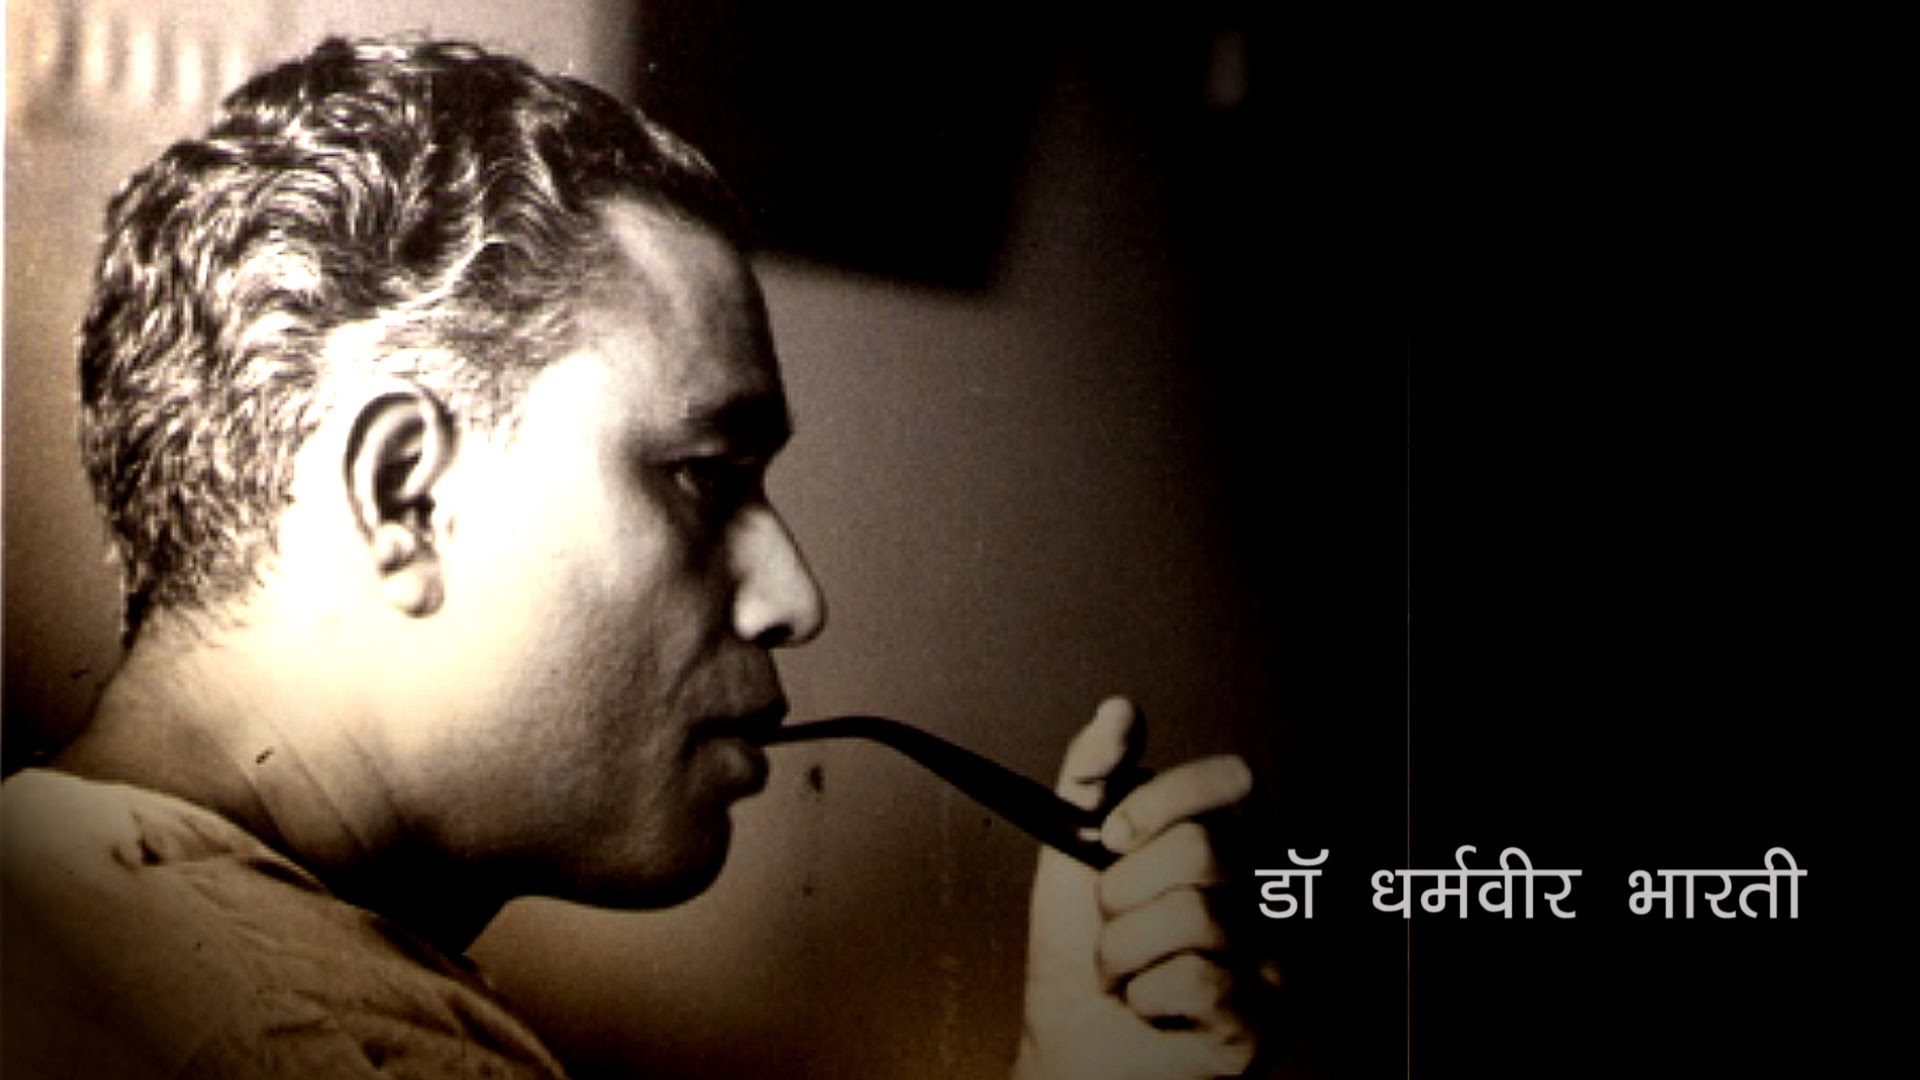 A renowned Hindi poet, author, playwright and a social thinker of India Dharamvir Bharati